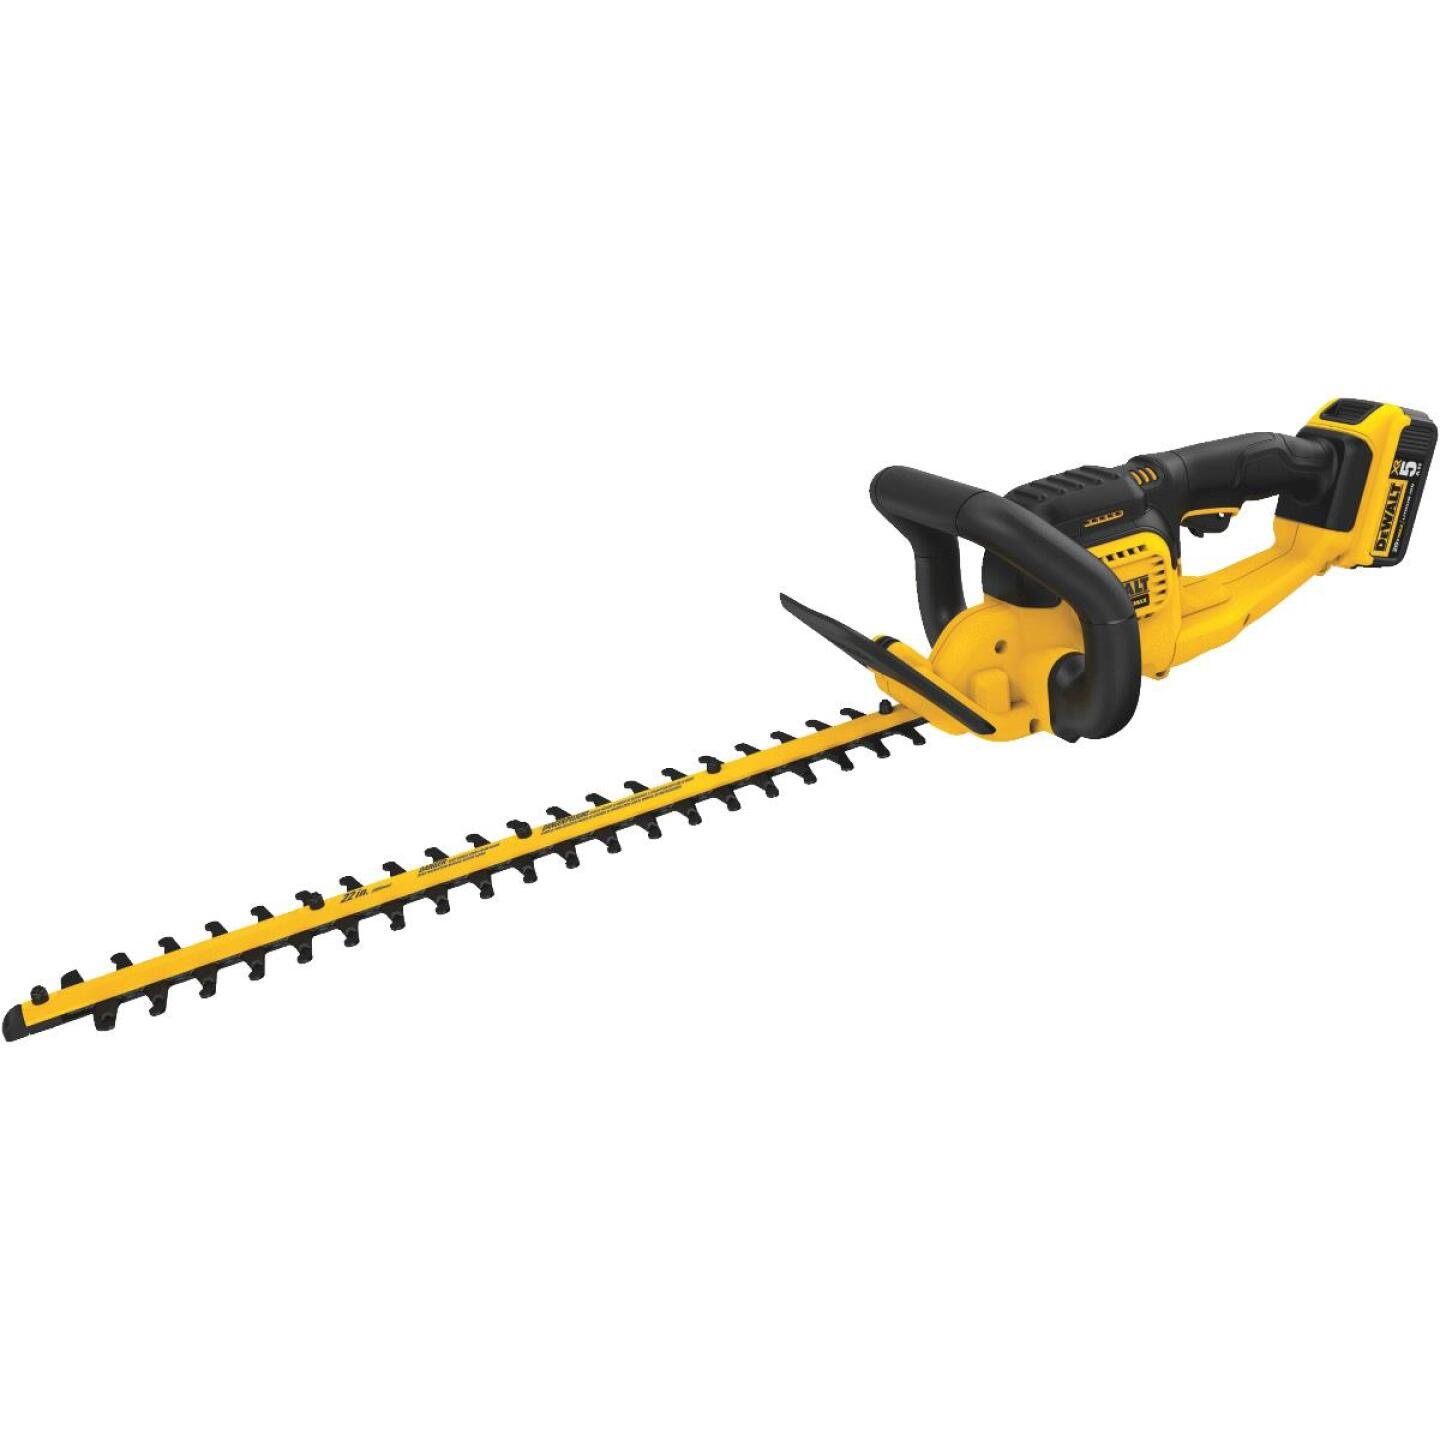 DeWalt 22 In. 20V Lithium Ion Cordless Hedge Trimmer Image 1